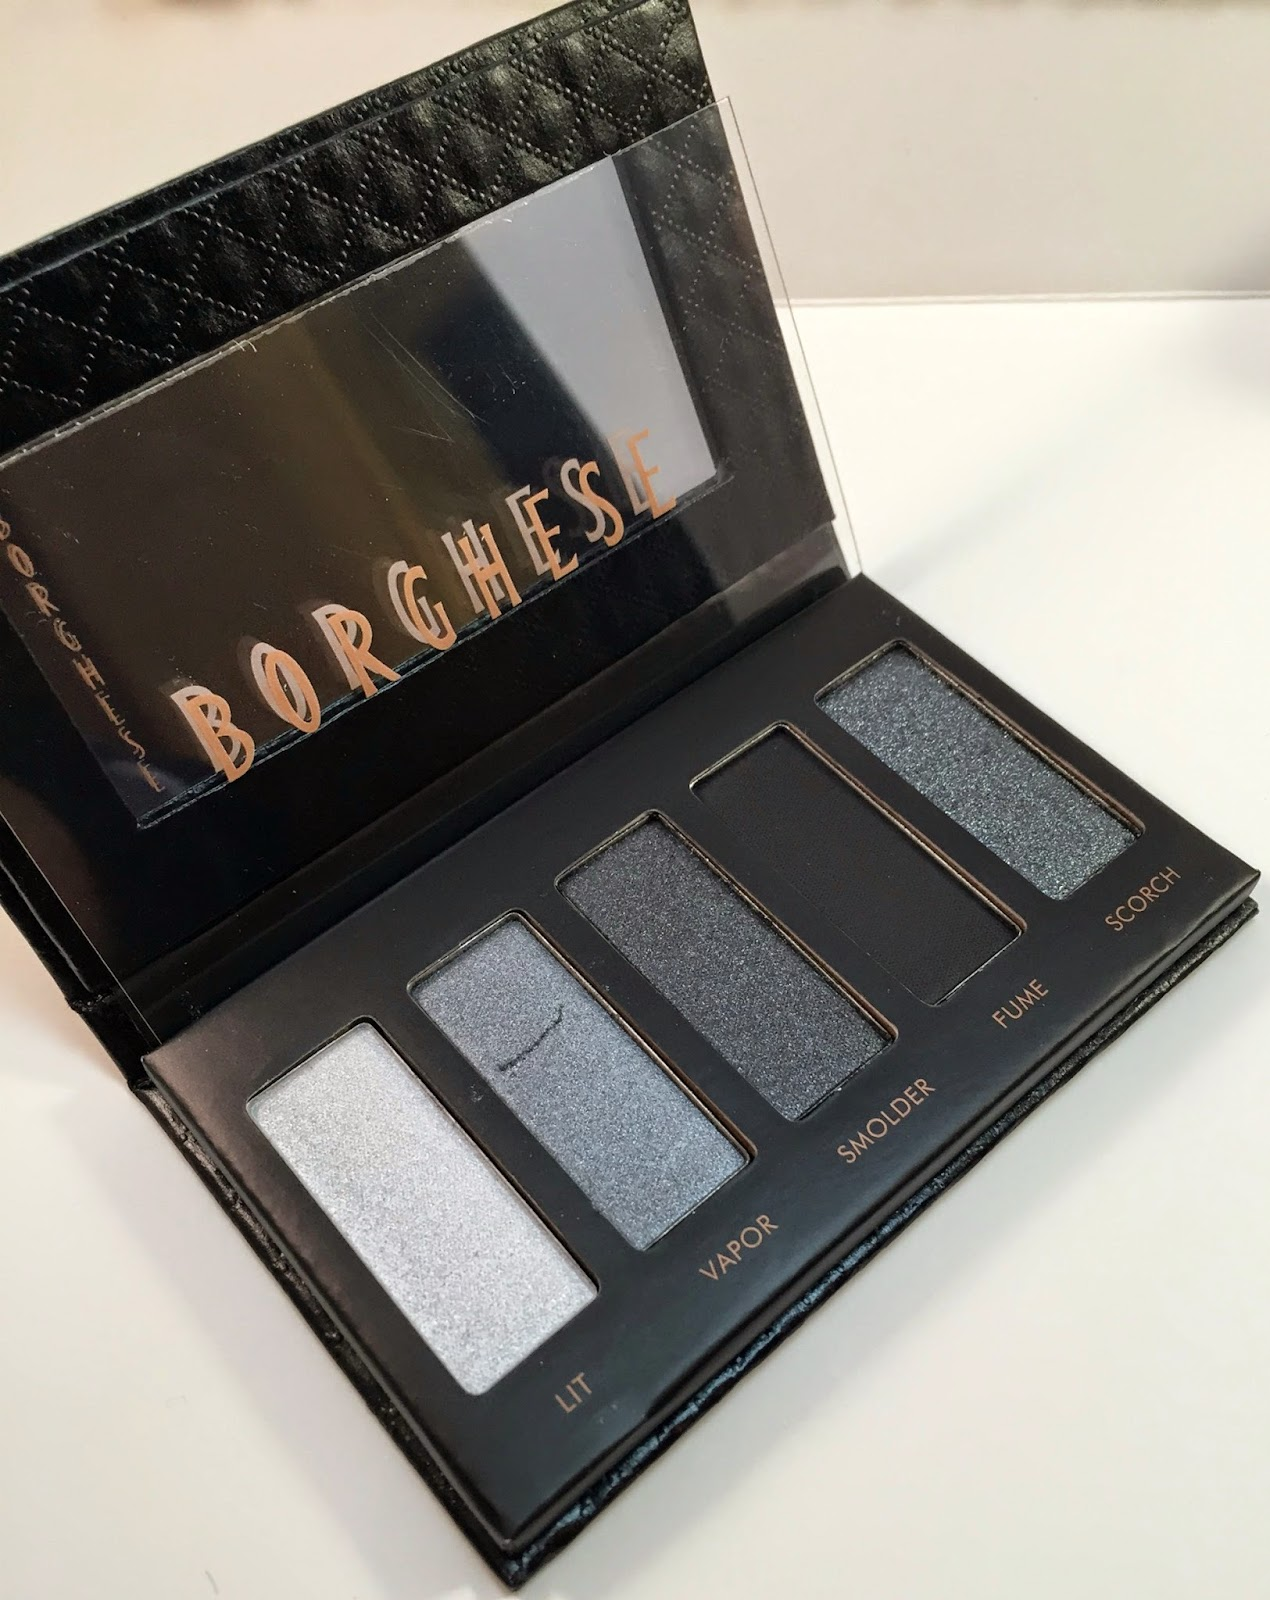 Borghese Palettes and Eyeliner Review